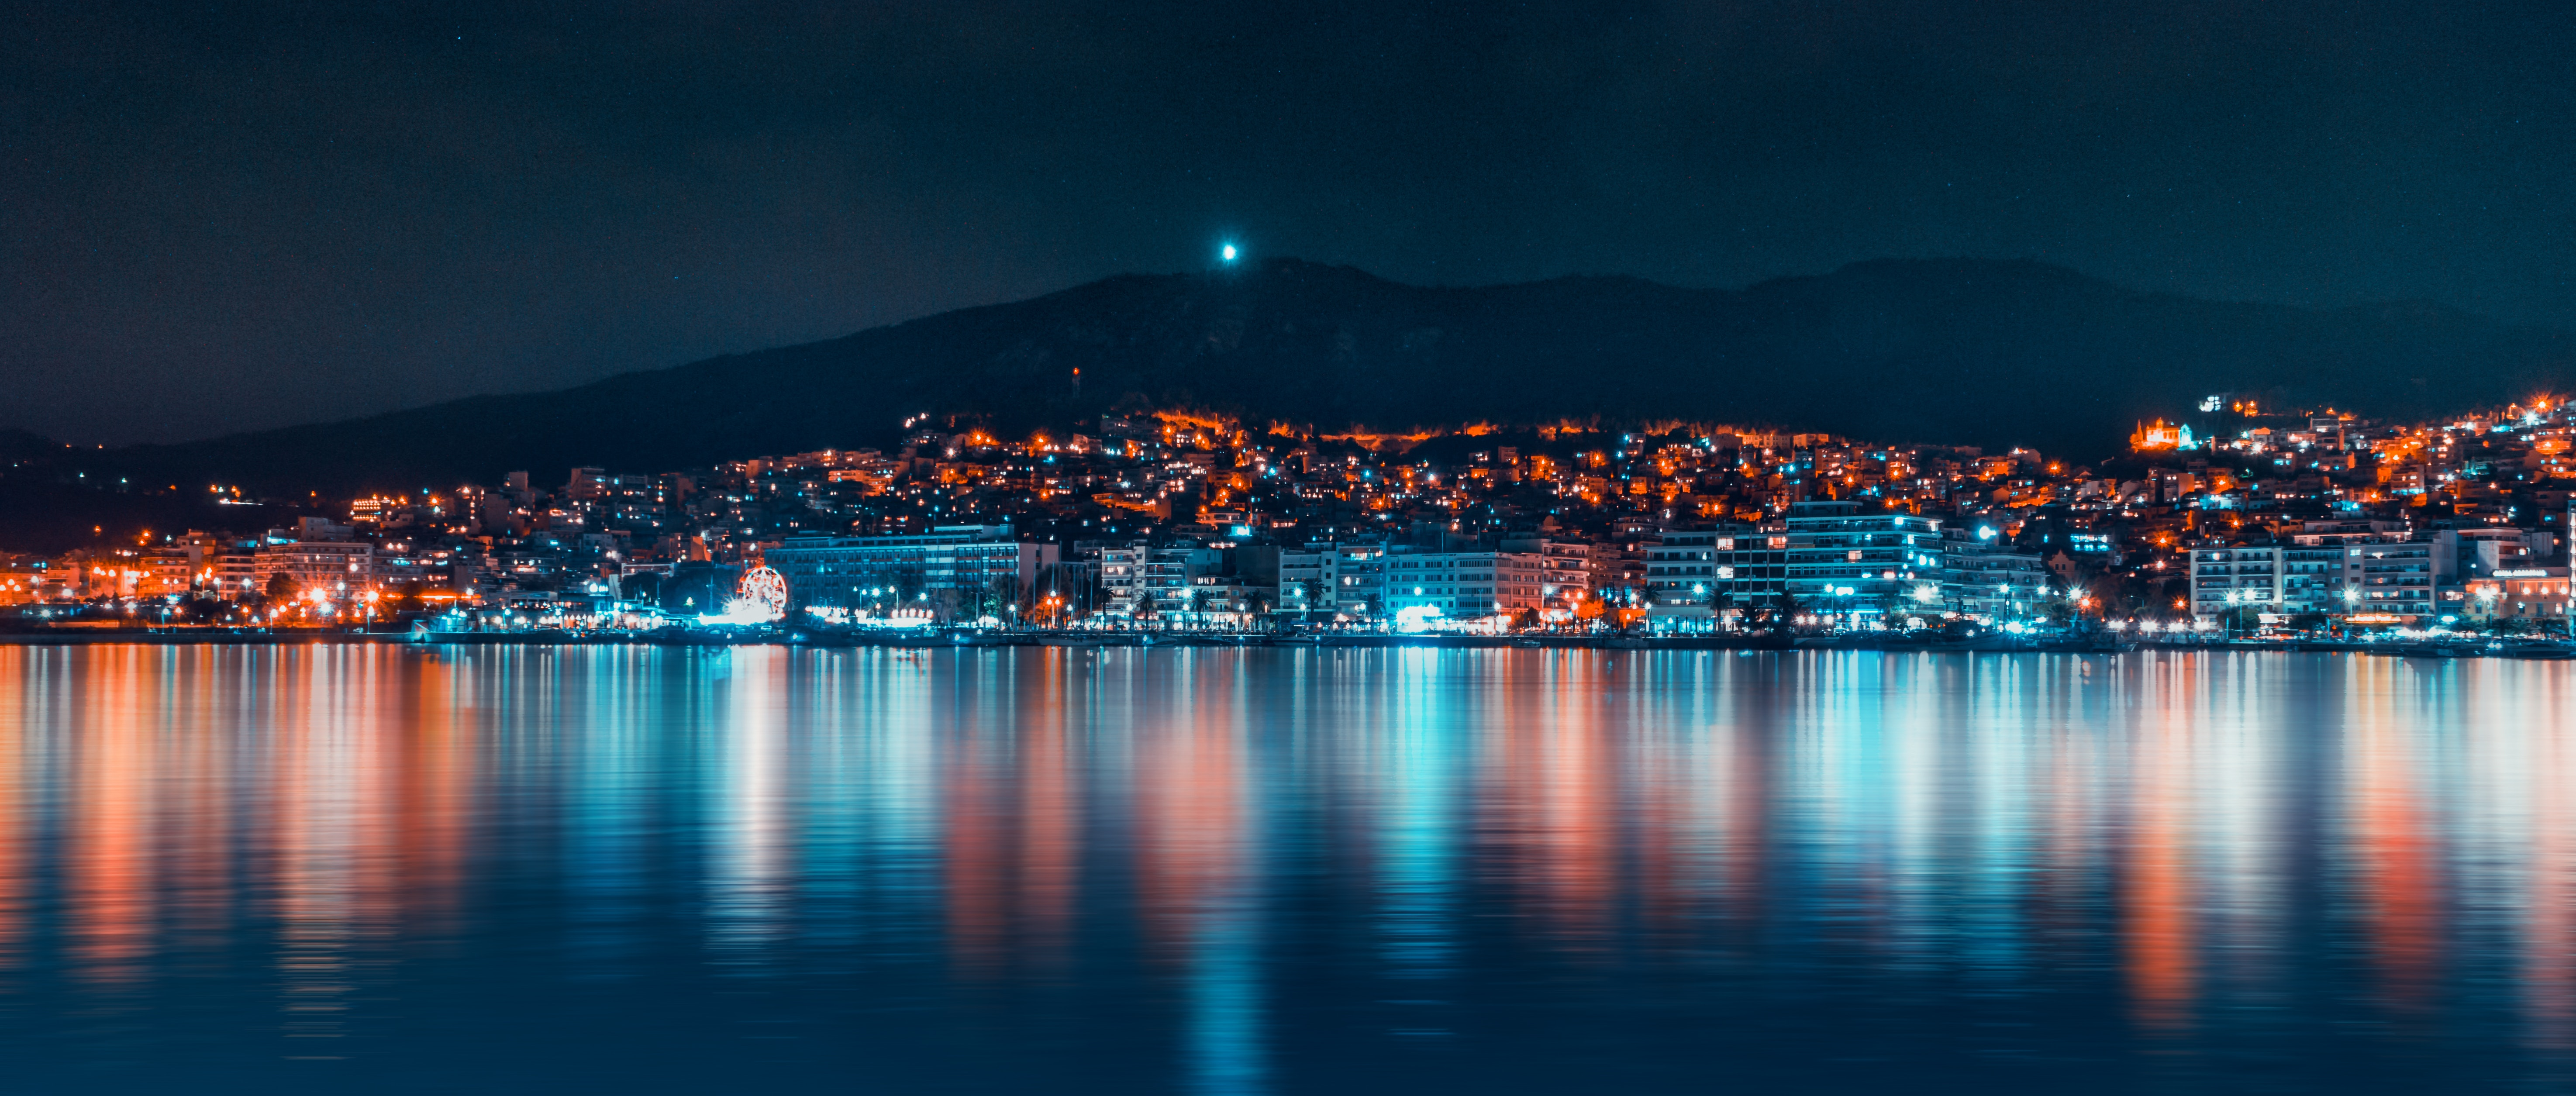 137842 free wallpaper 1080x2340 for phone, download images Cities, Night, Reflection, Coast, Night City, Panorama 1080x2340 for mobile